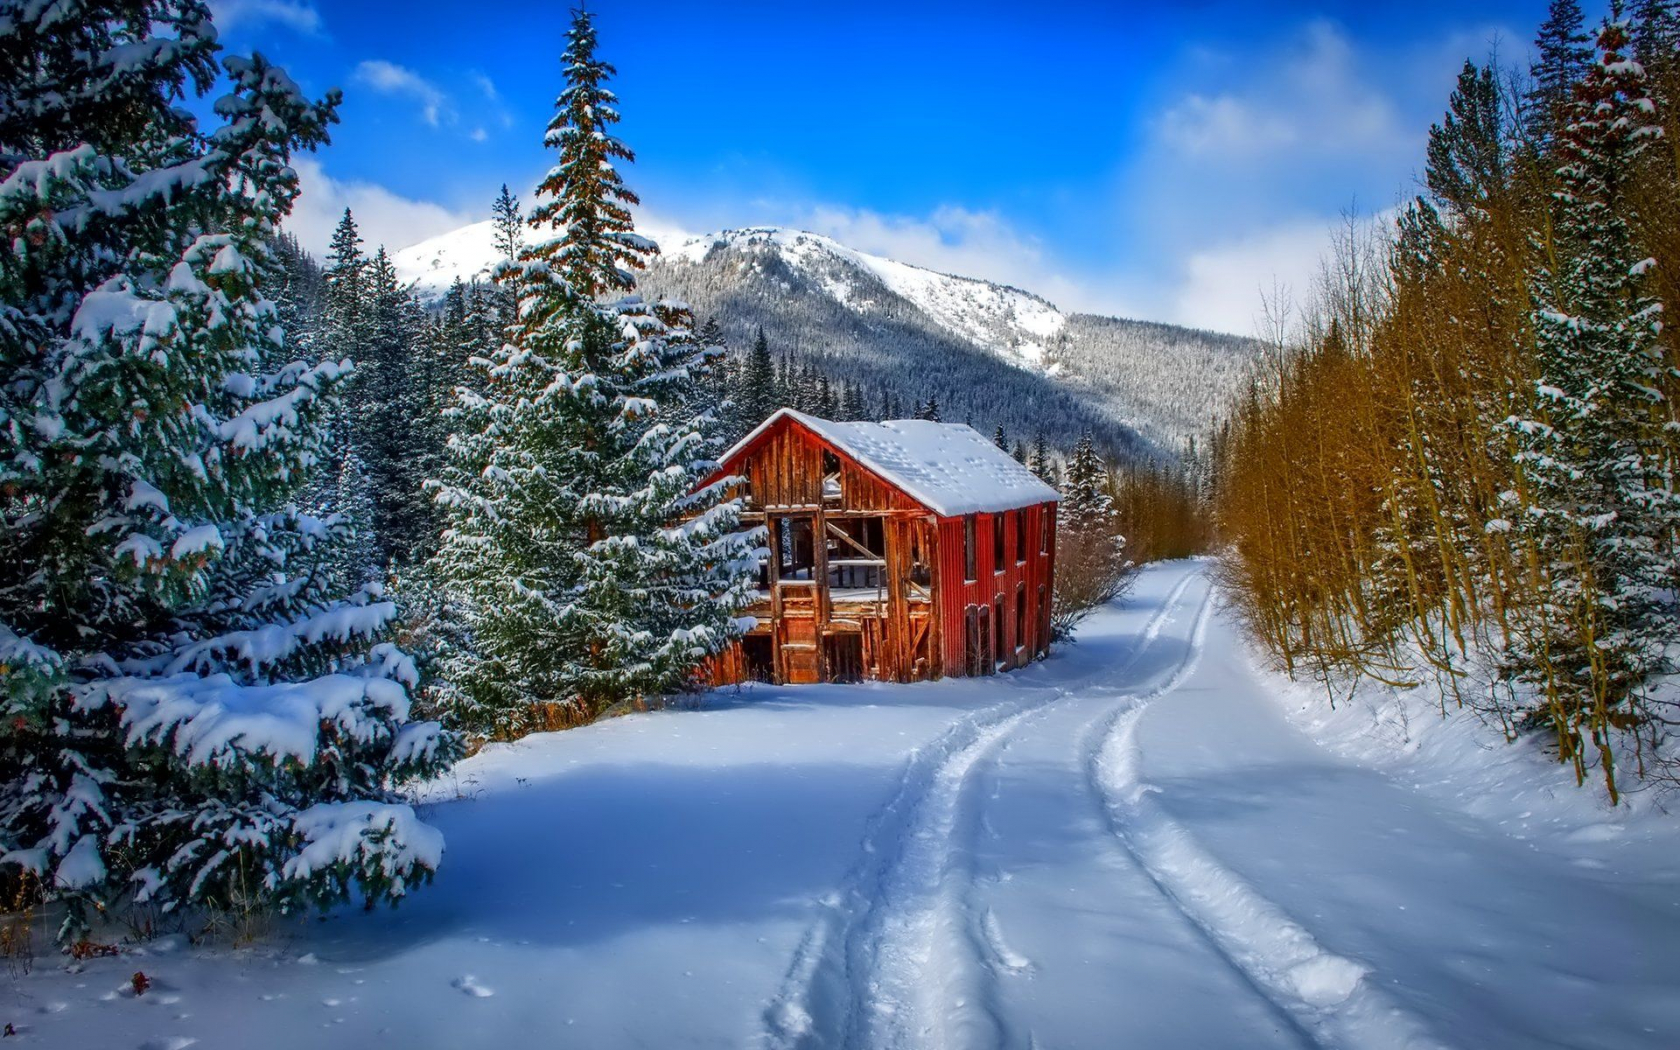 Free Download 70 Cabin Mountain Winter Iphone Wallpapers Download At Wallpaperbro 1920x1200 For Your Desktop Mobile Tablet Explore 57 Winter Cabin Wallpaper Free Winter Cabin Wallpaper Images Cabin In